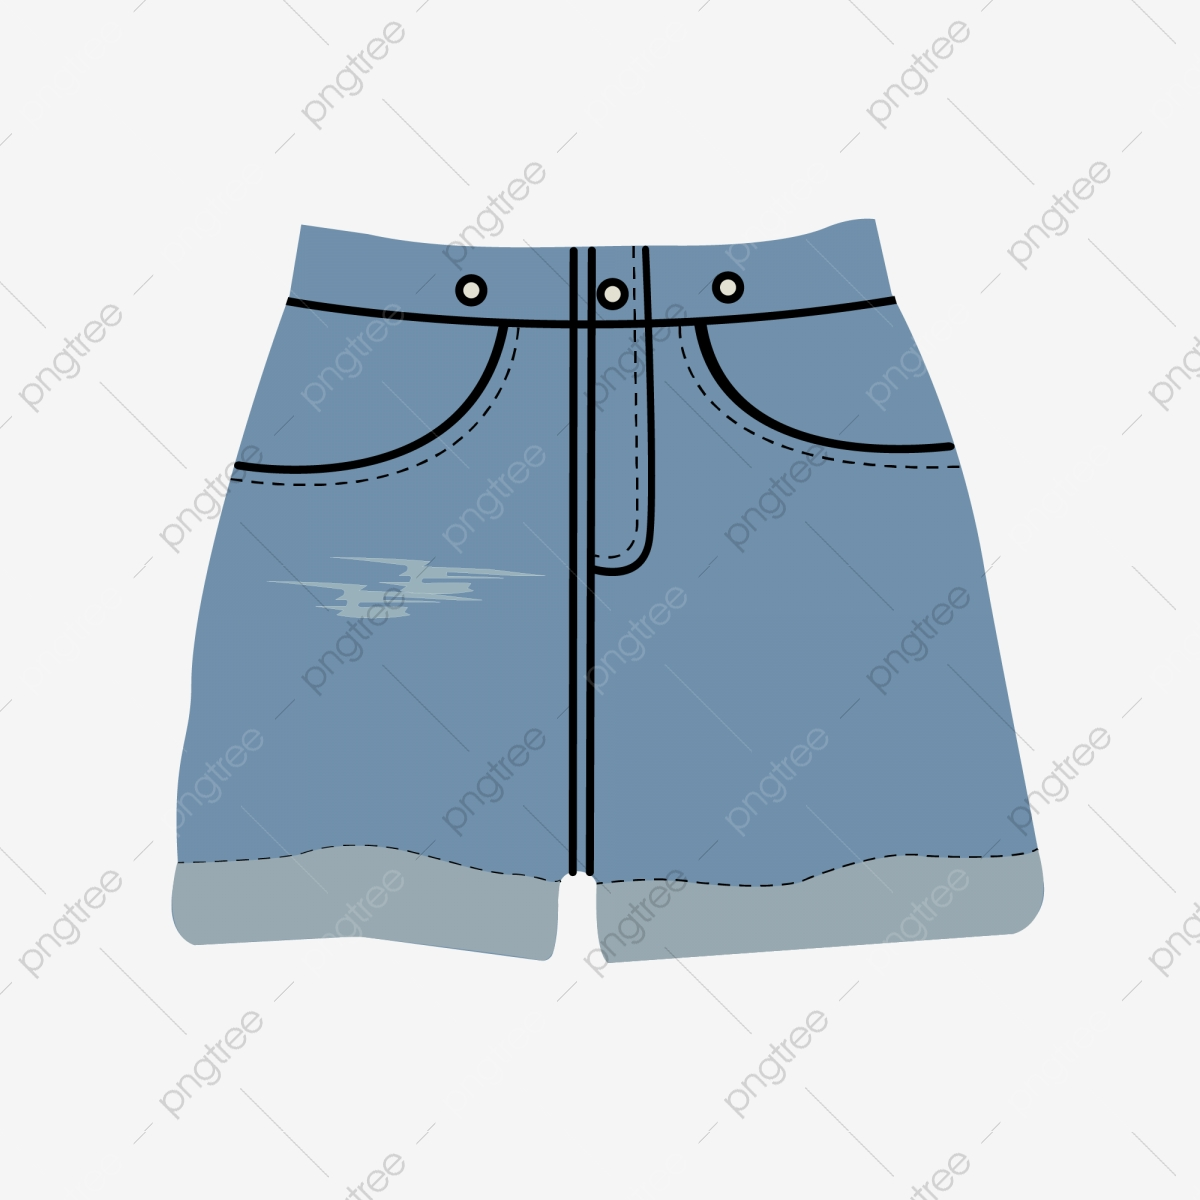 Shorts Clipart PNG Images   Vector and PSD Files   Free Download on Pngtree